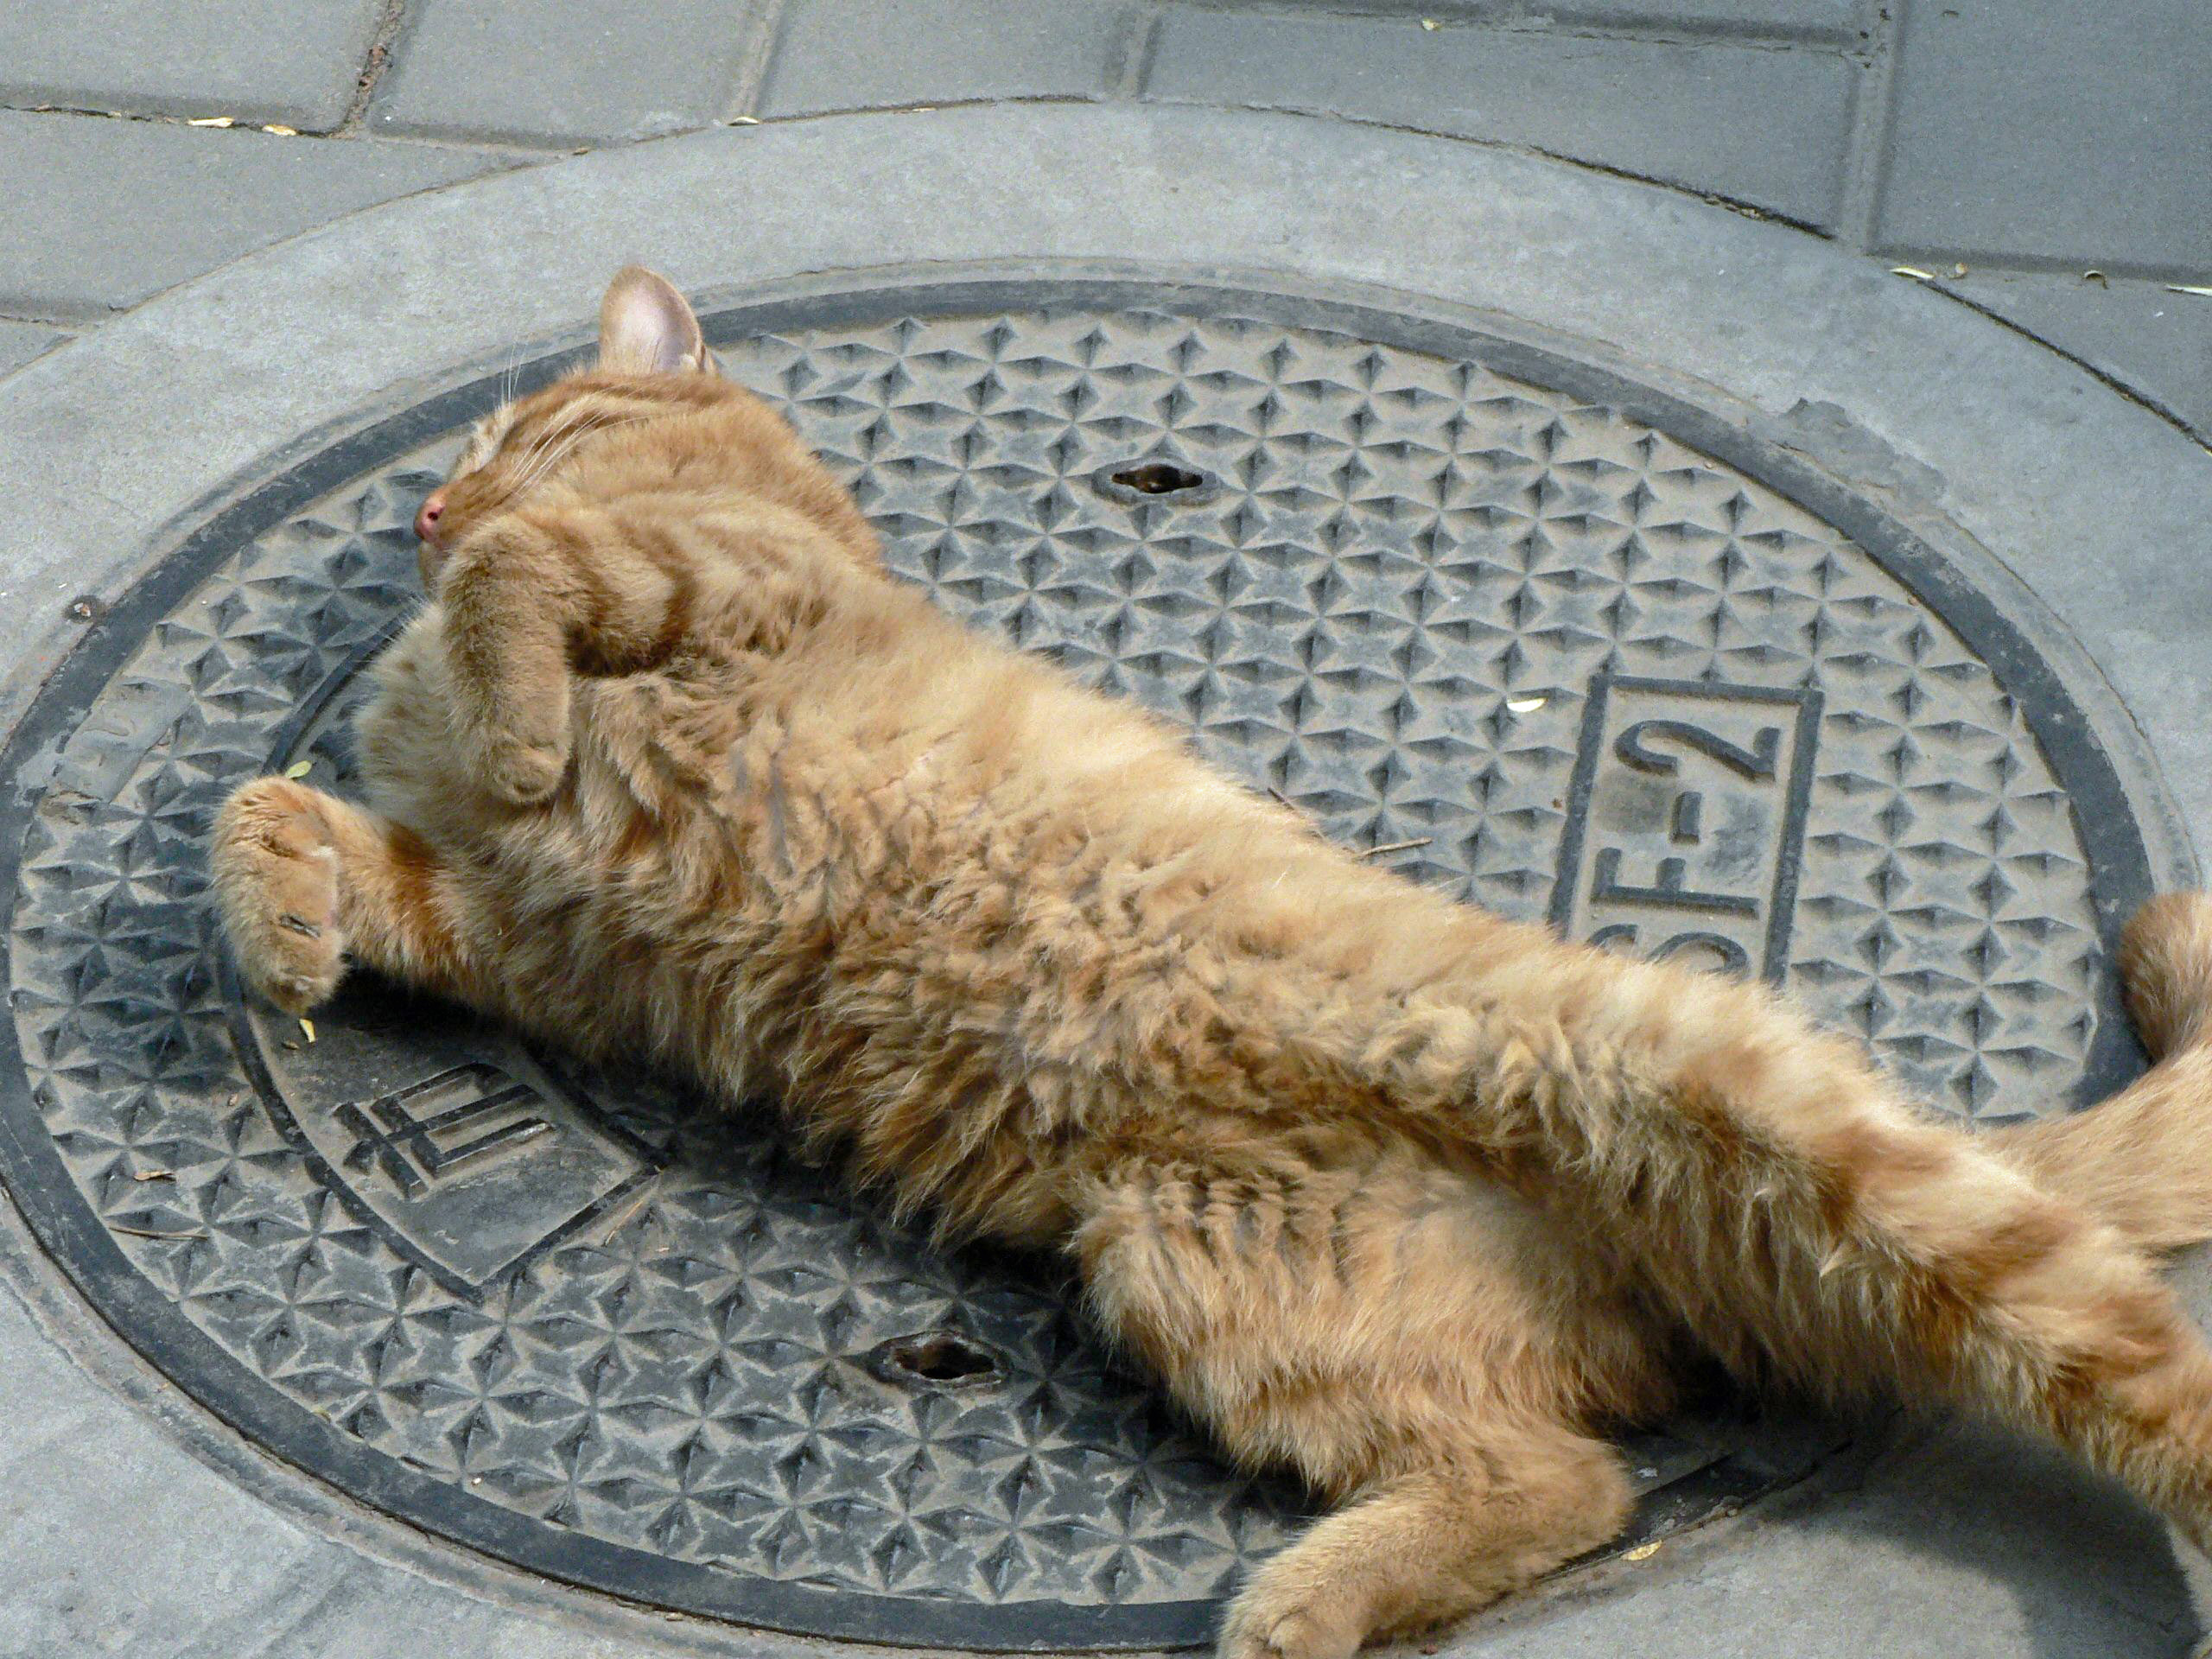 Orange cat relaxing on manhole cover